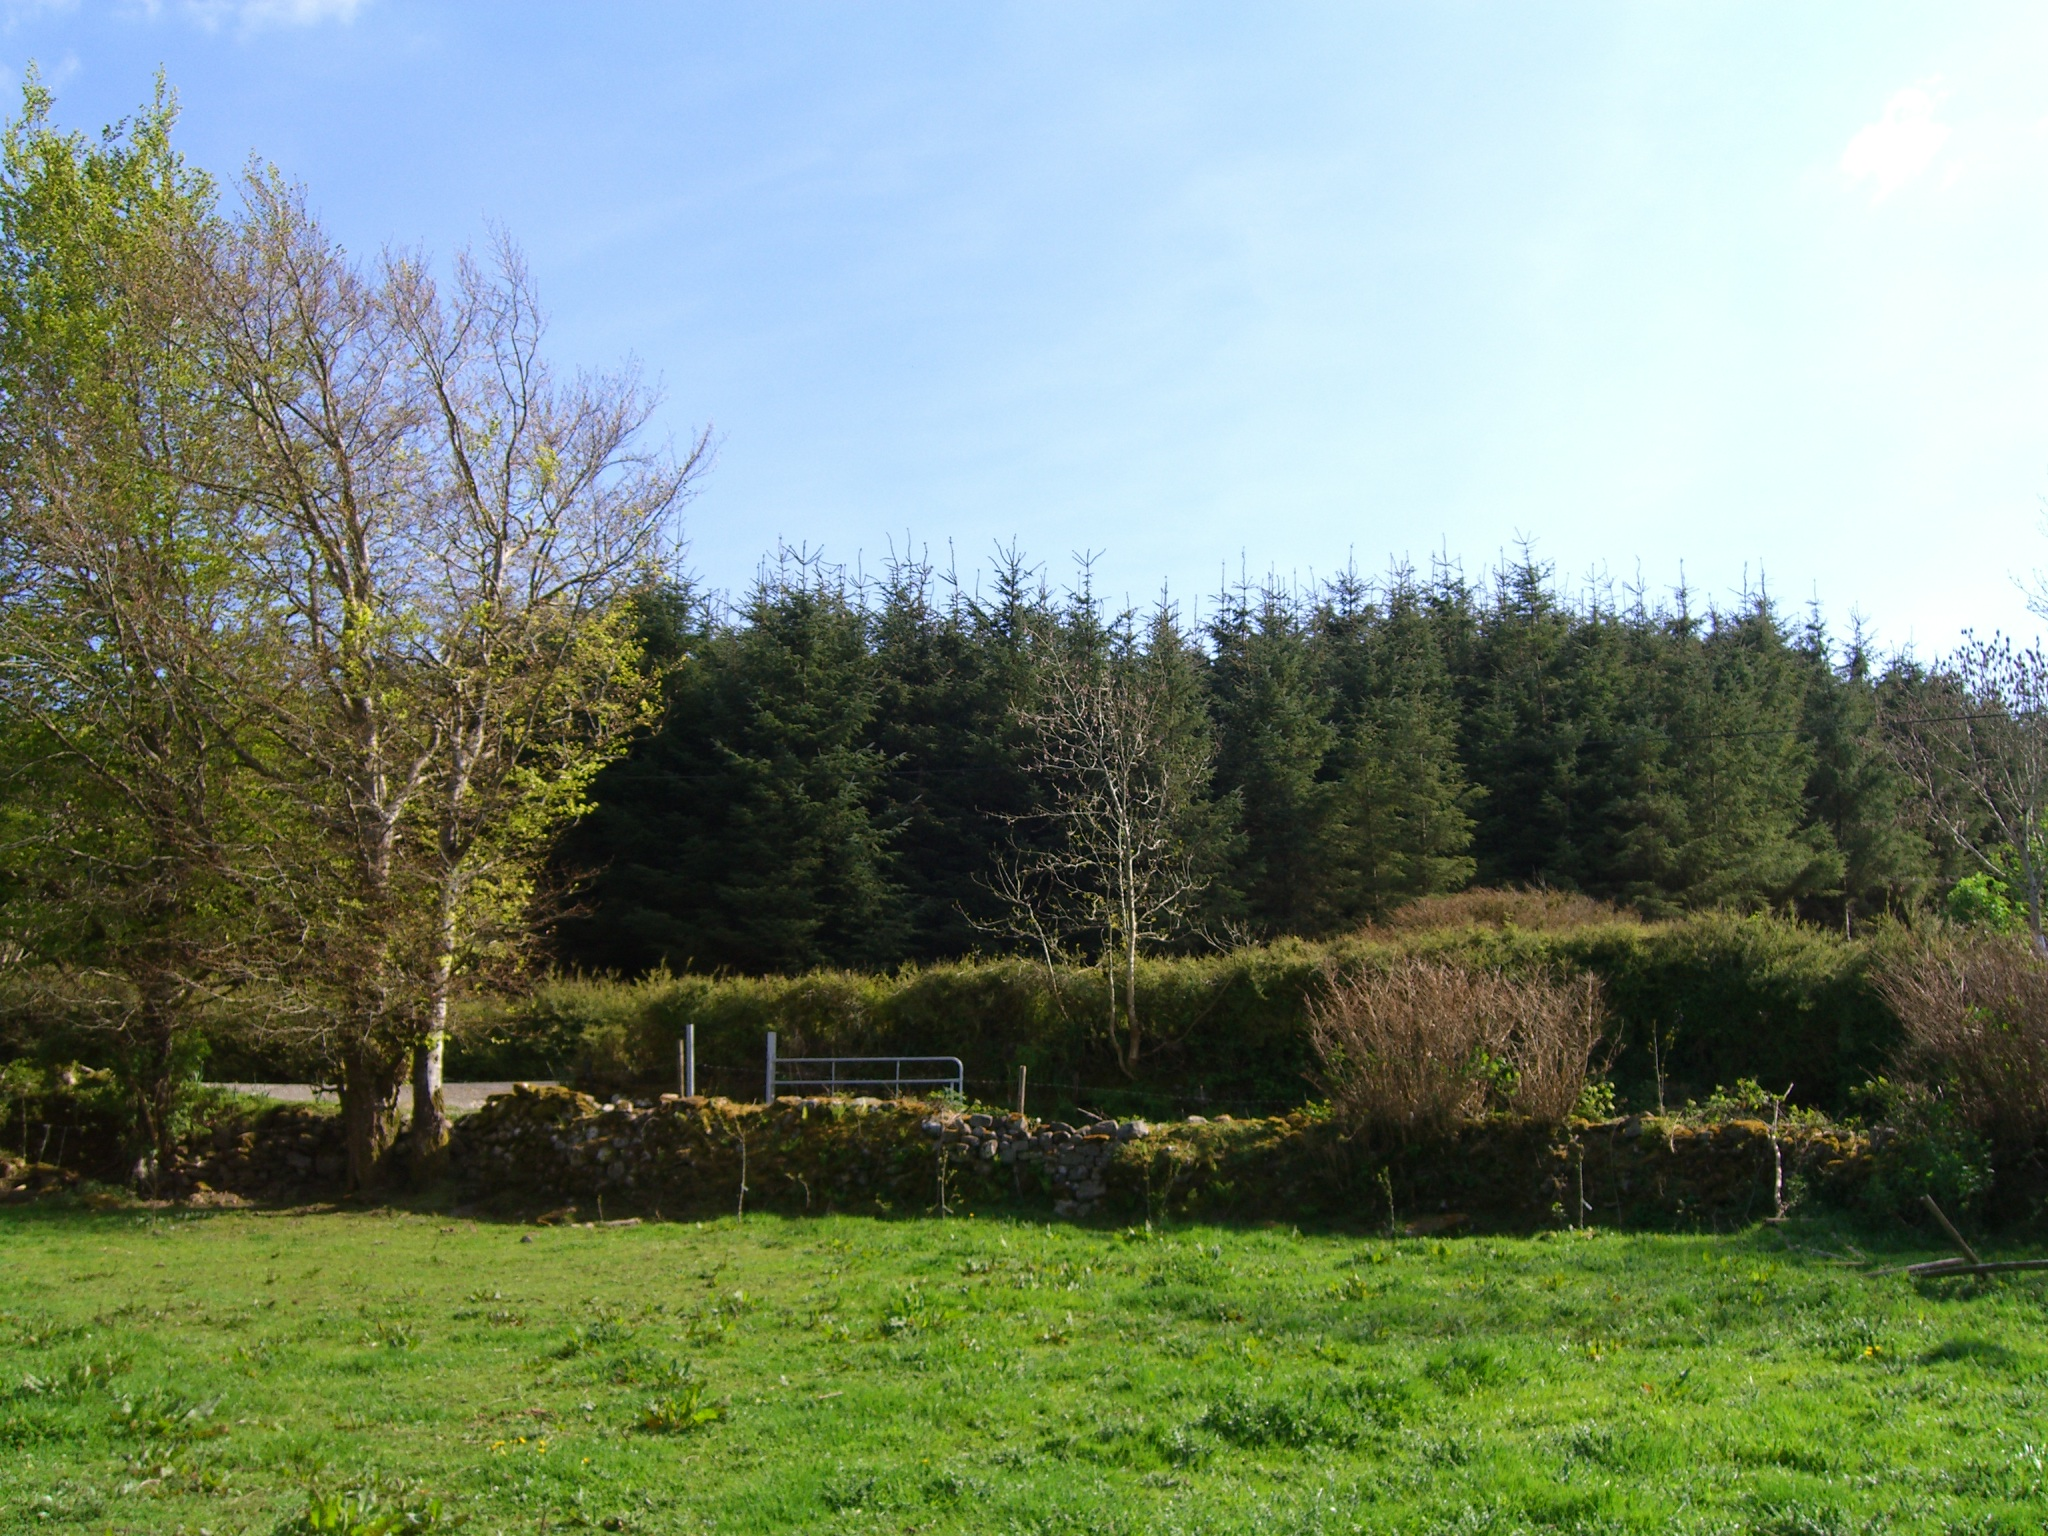 A view over the field (gate and path towards the house)